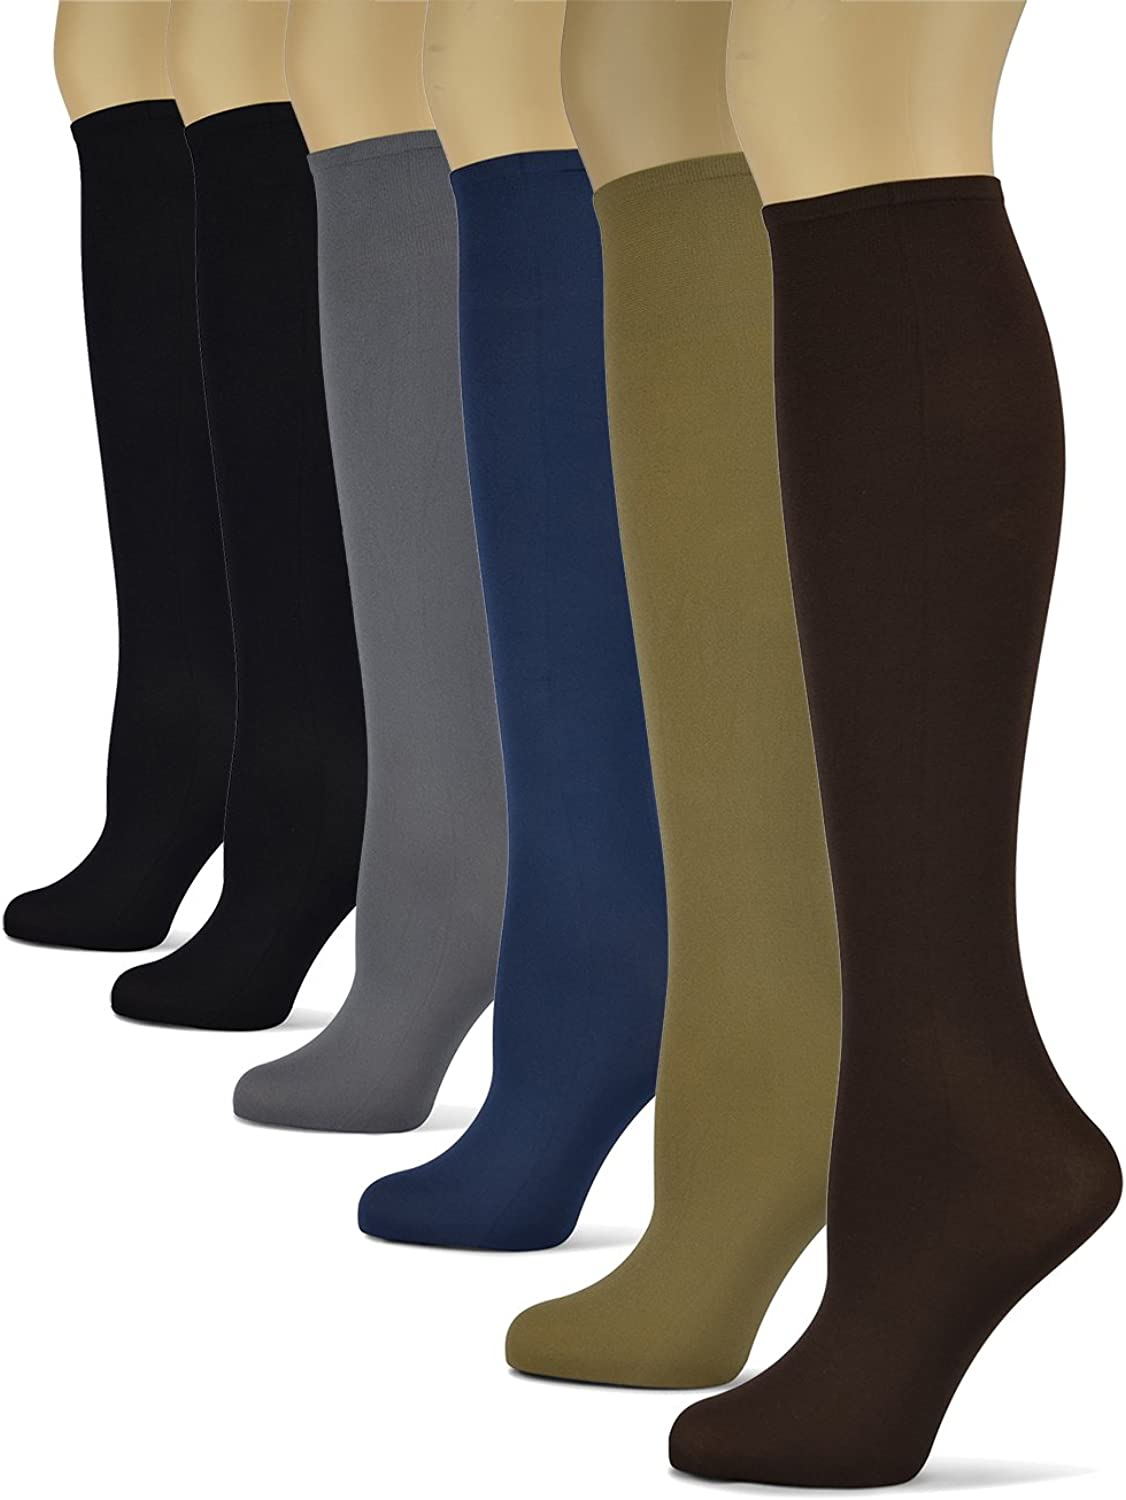 Silky Smooth Knee High Socks Trouser Socks by Sox Tred   Thin Material   Black, Brown, Grey, Navy, Taupe, Red, Purple, Teal